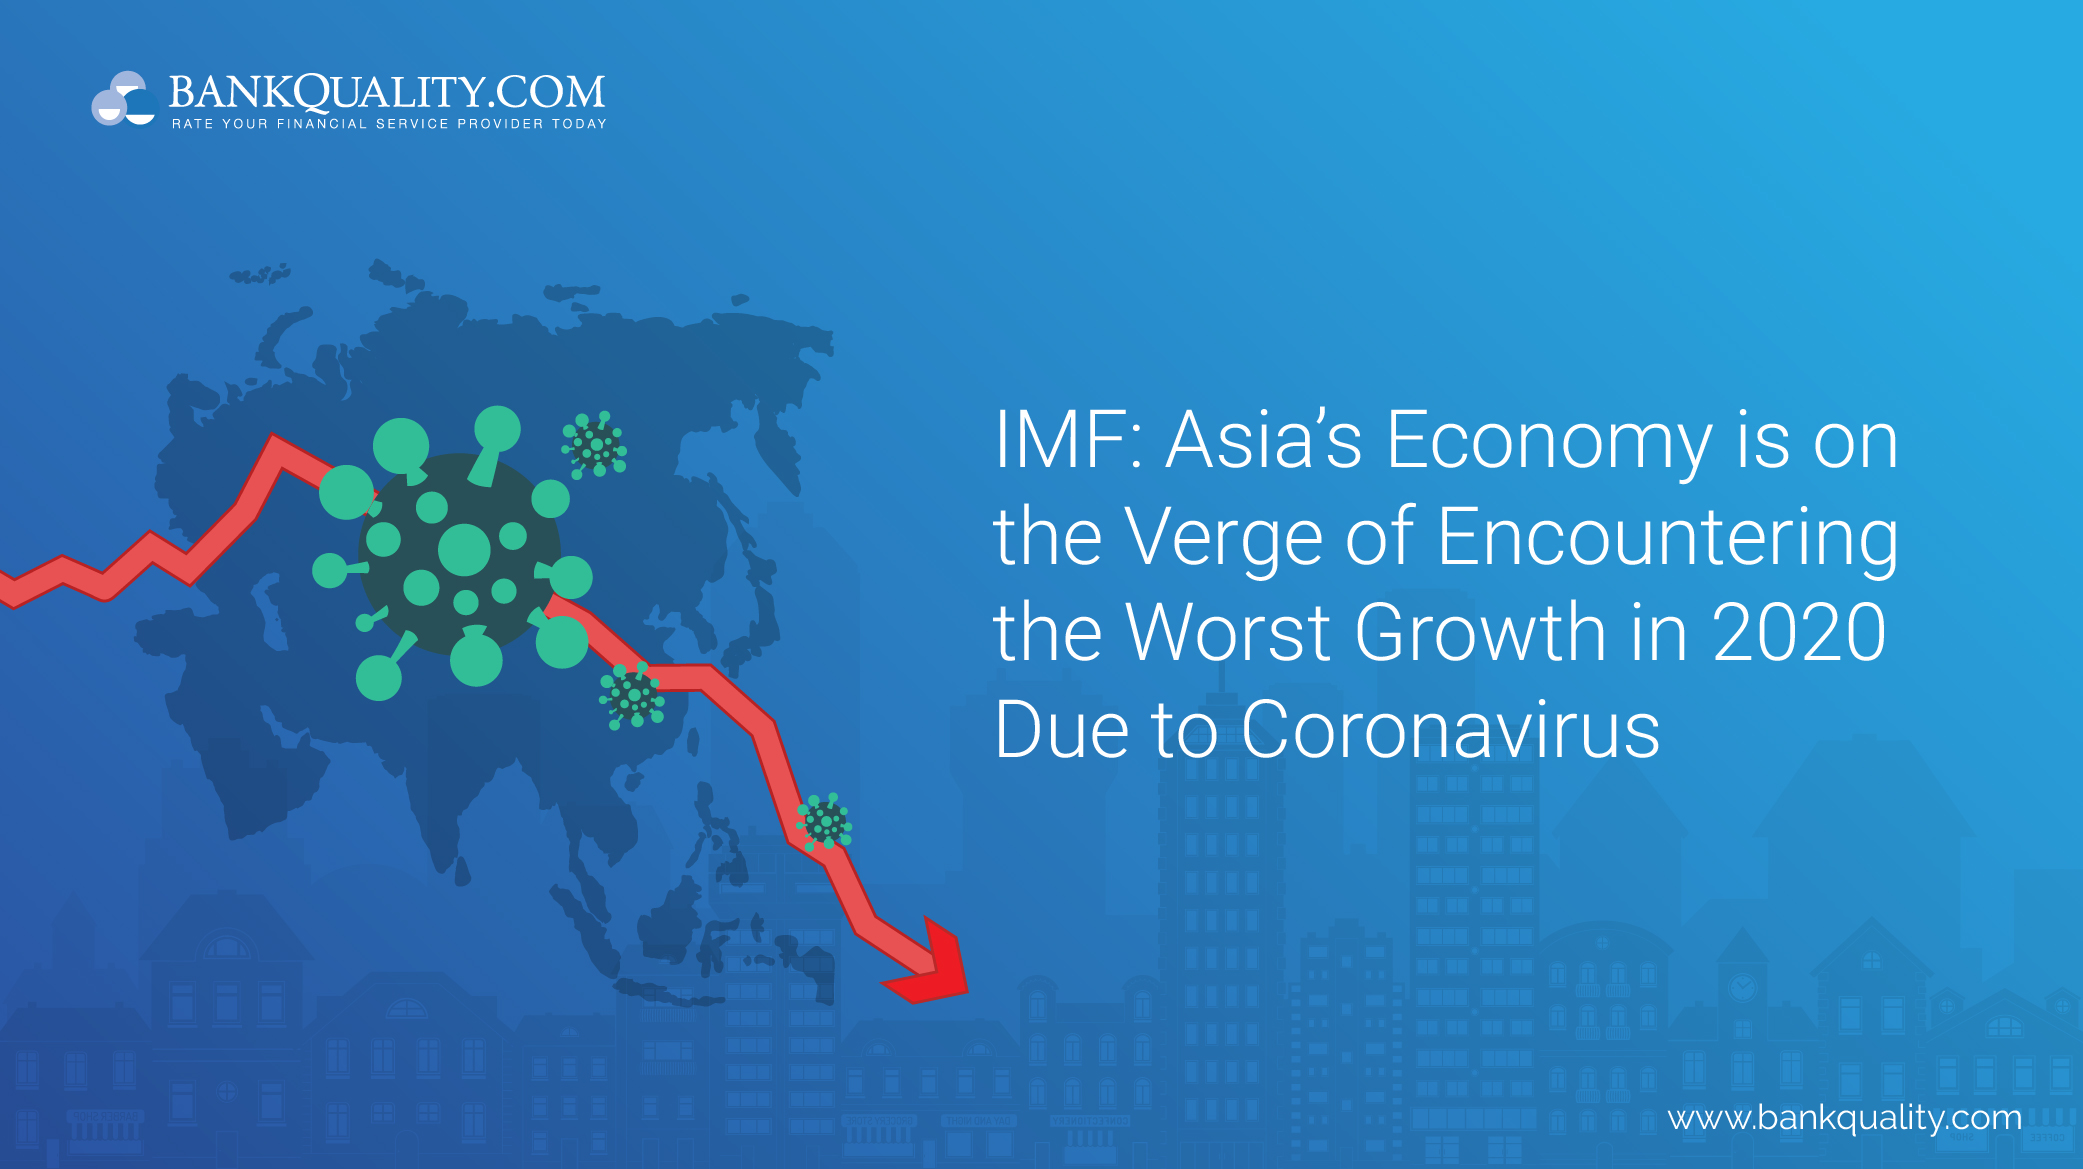 IMF: Asias Economy is on the Verge of Encountering the Worst Growth in 2020 Due to Coronavirus